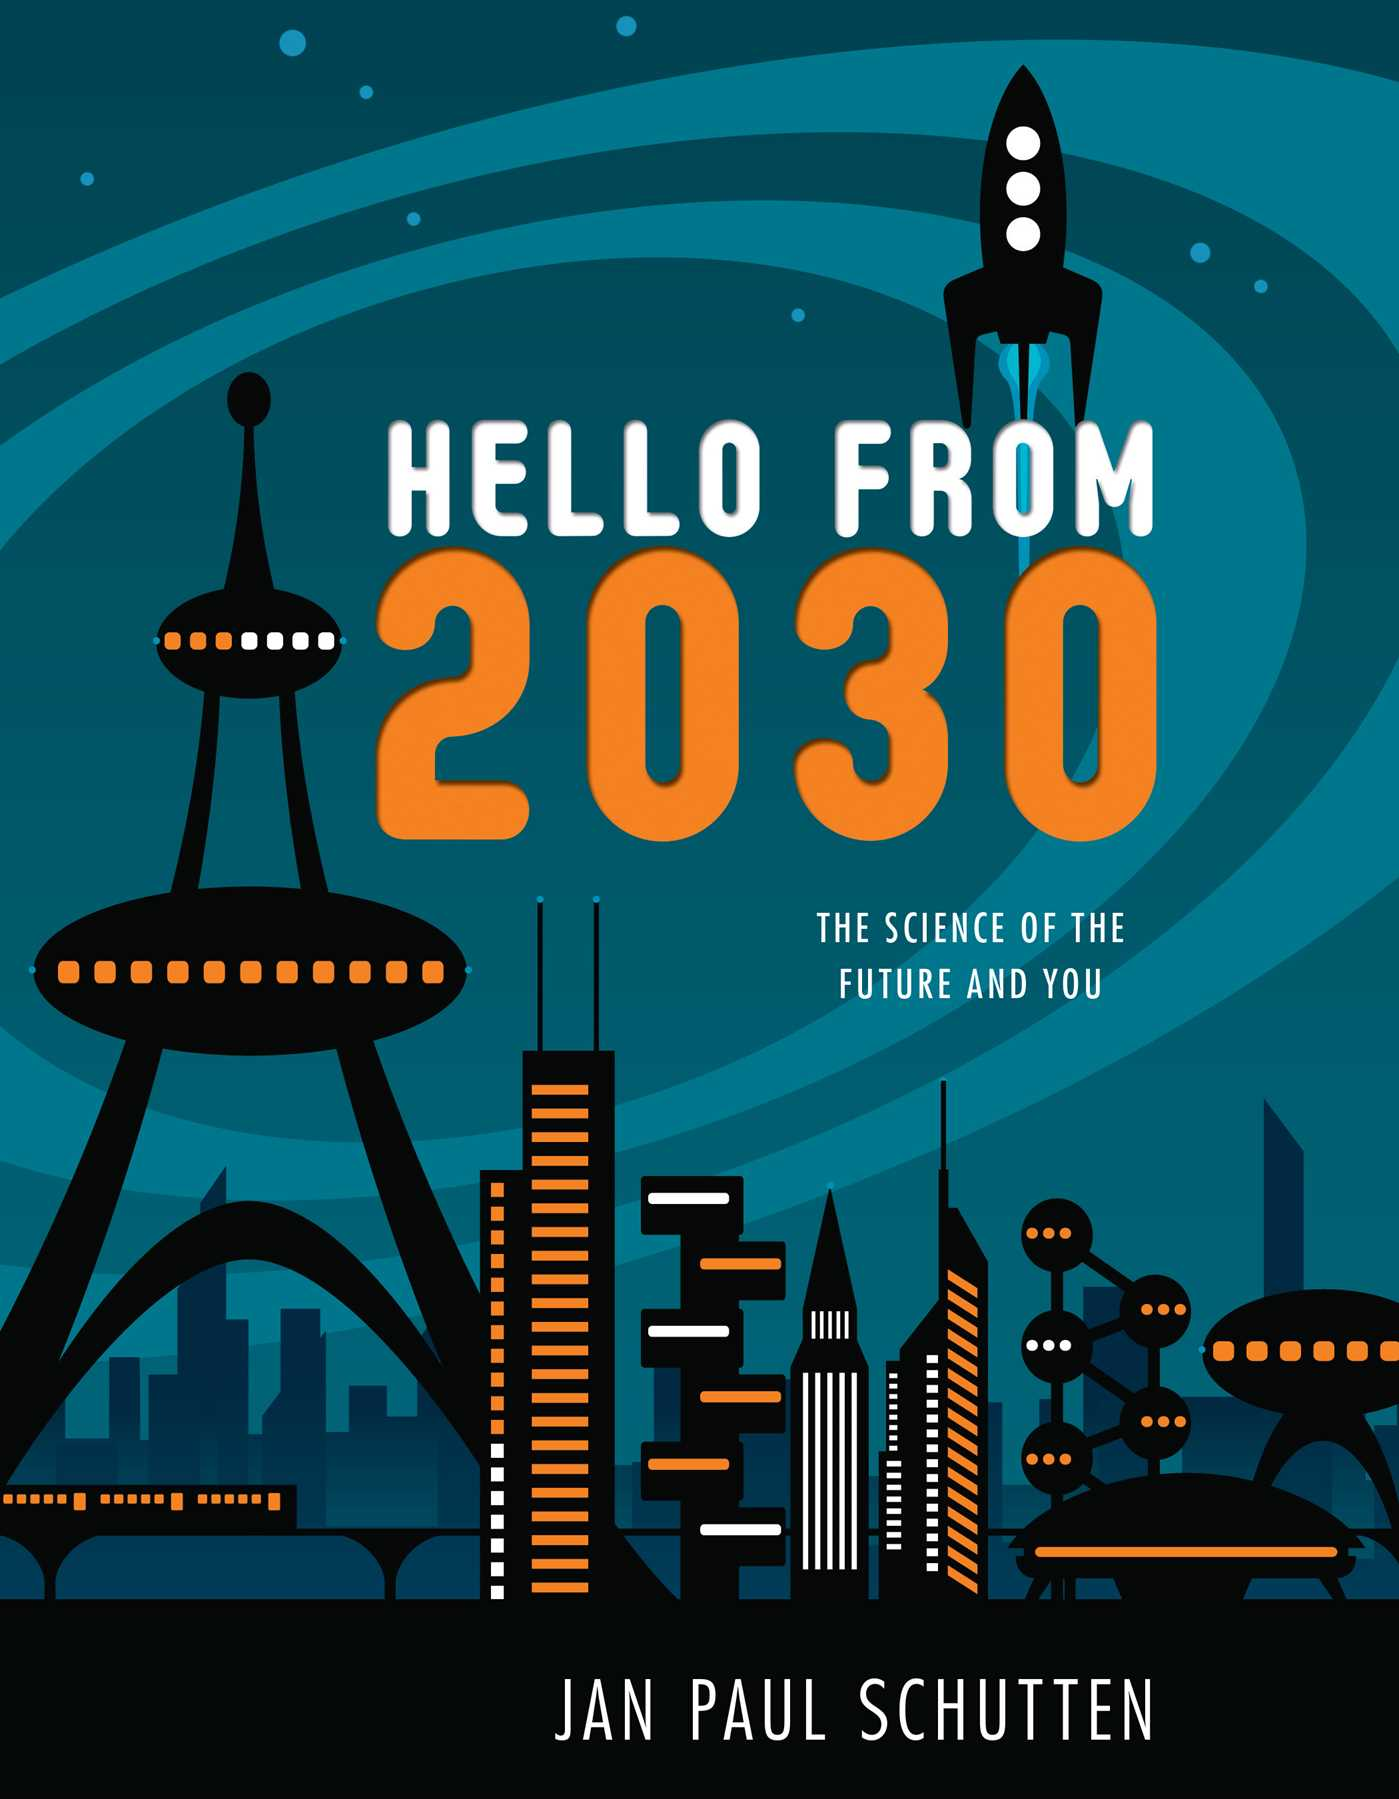 Book Cover Image (jpg): Hello from 2030